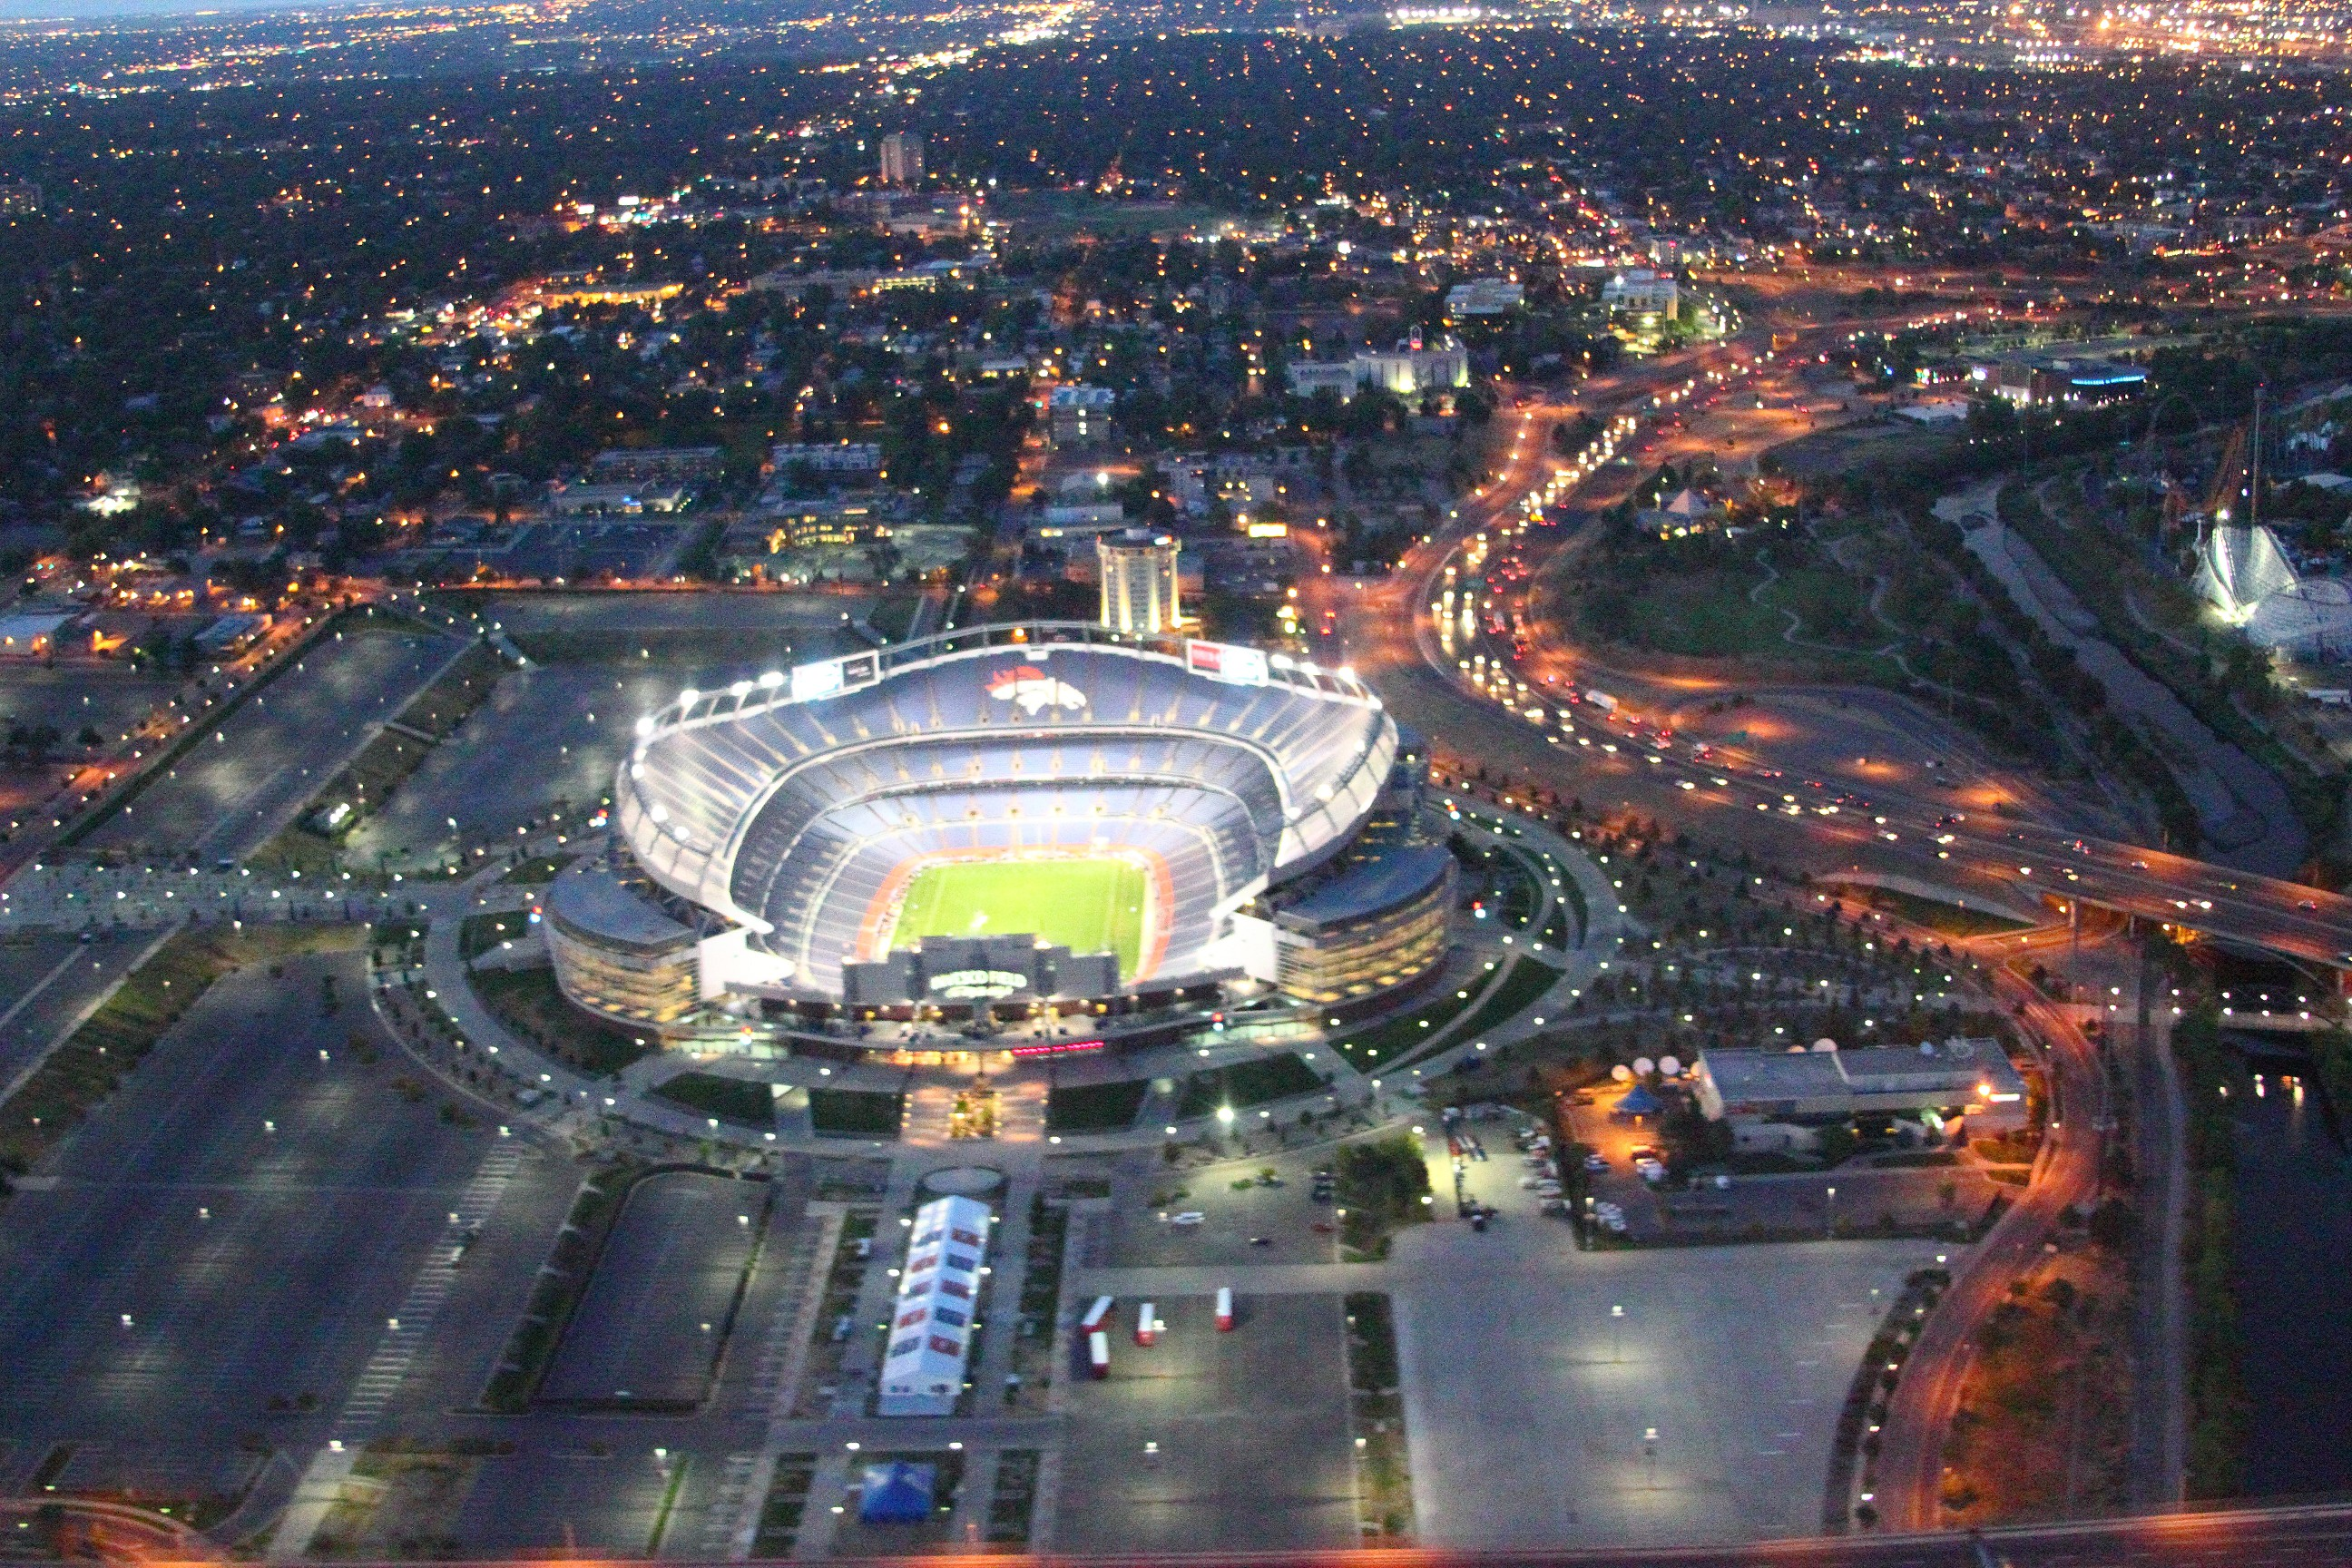 Mile High Stadium, night, from manned helicopter.